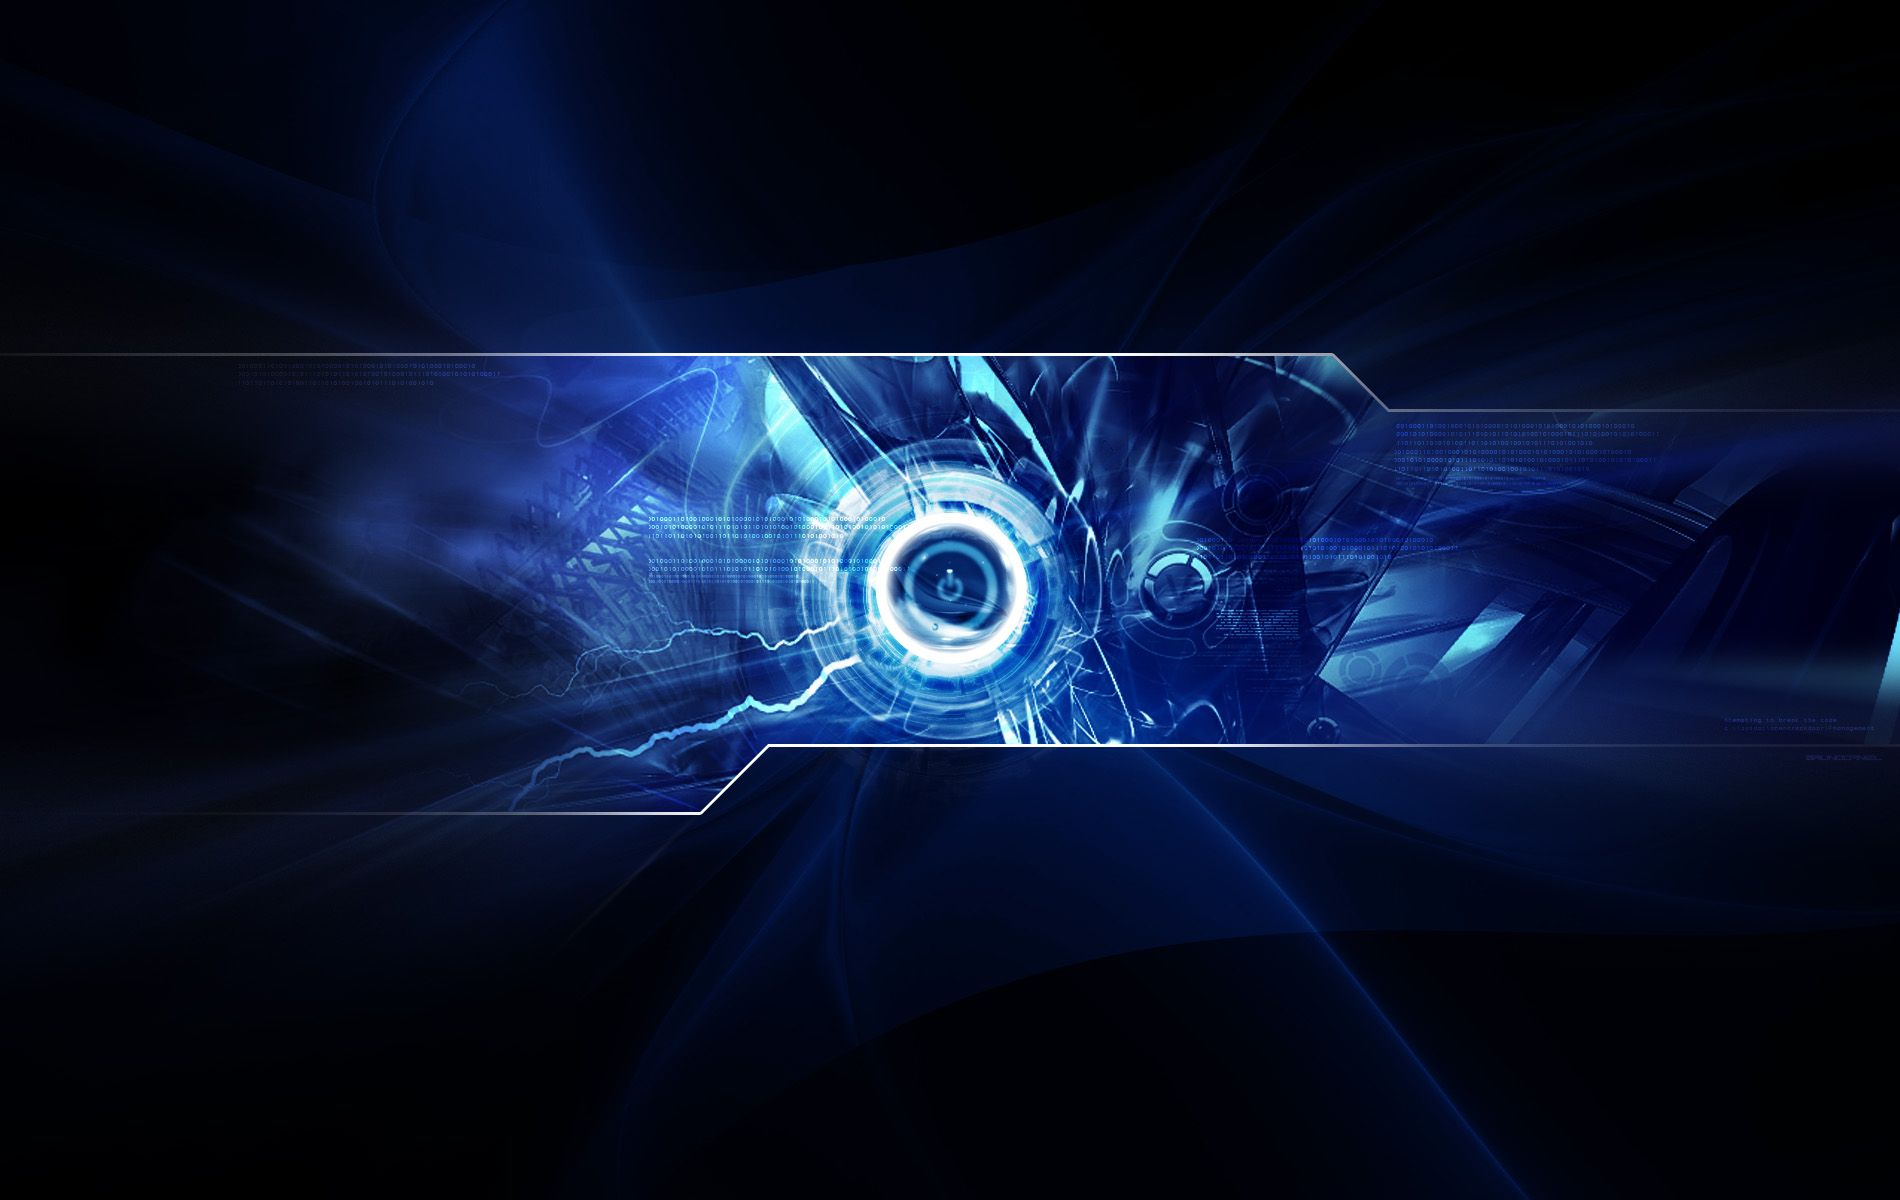 1900x1200 Blue Wallpaper and Background Image | 1900x1200 | ID:66956